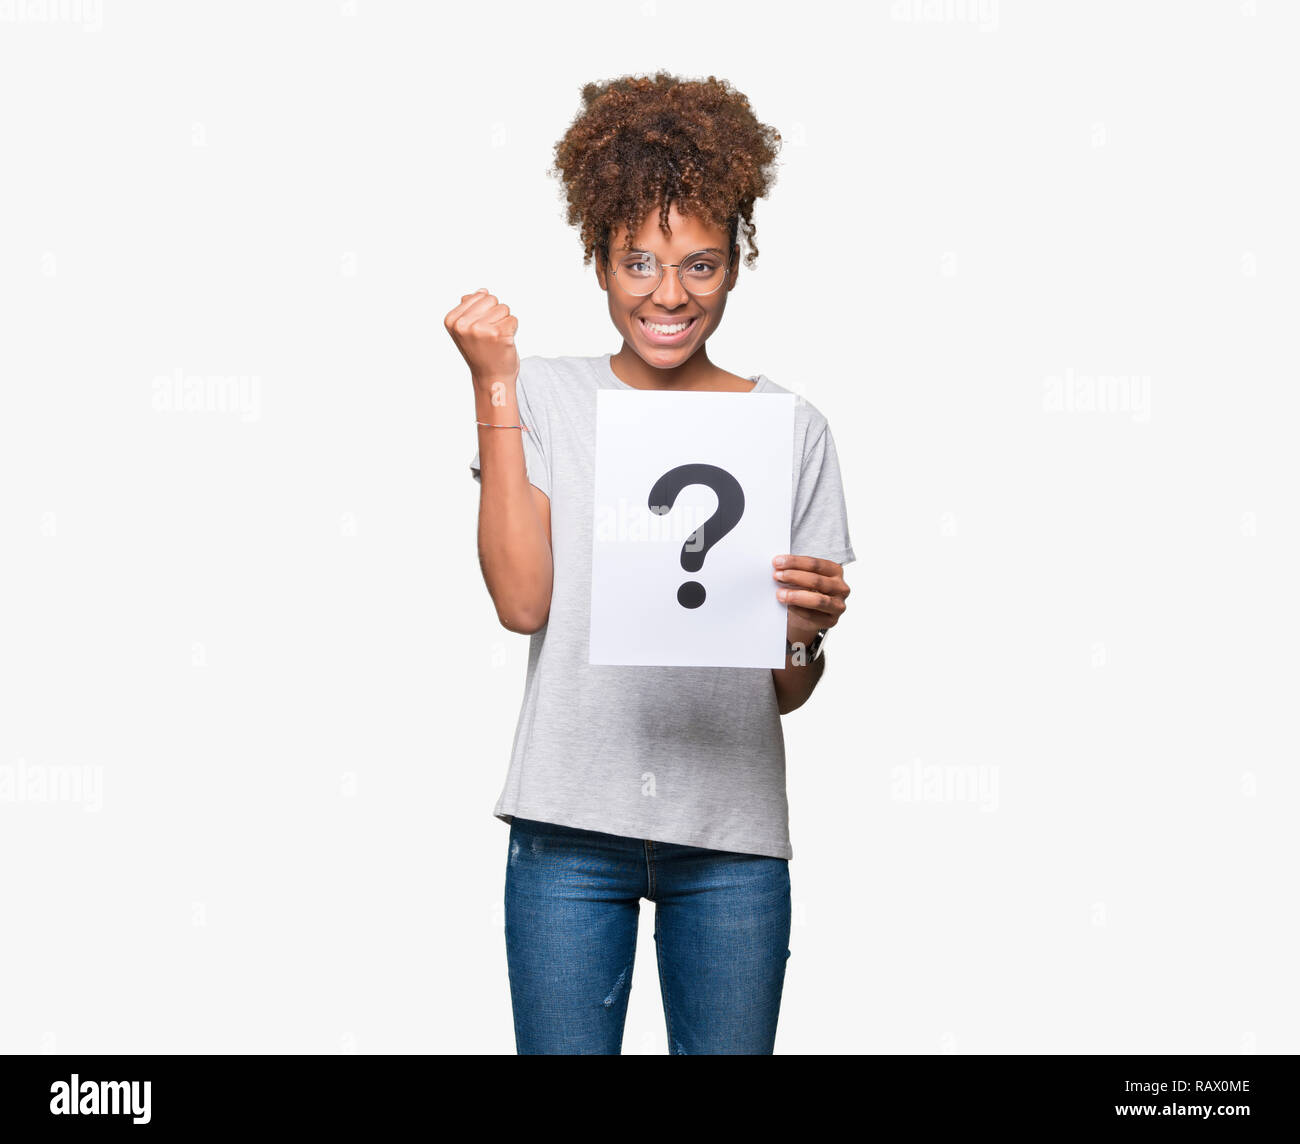 Young african american woman holding paper with question mark over isolated background screaming proud and celebrating victory and success very excite - Stock Image